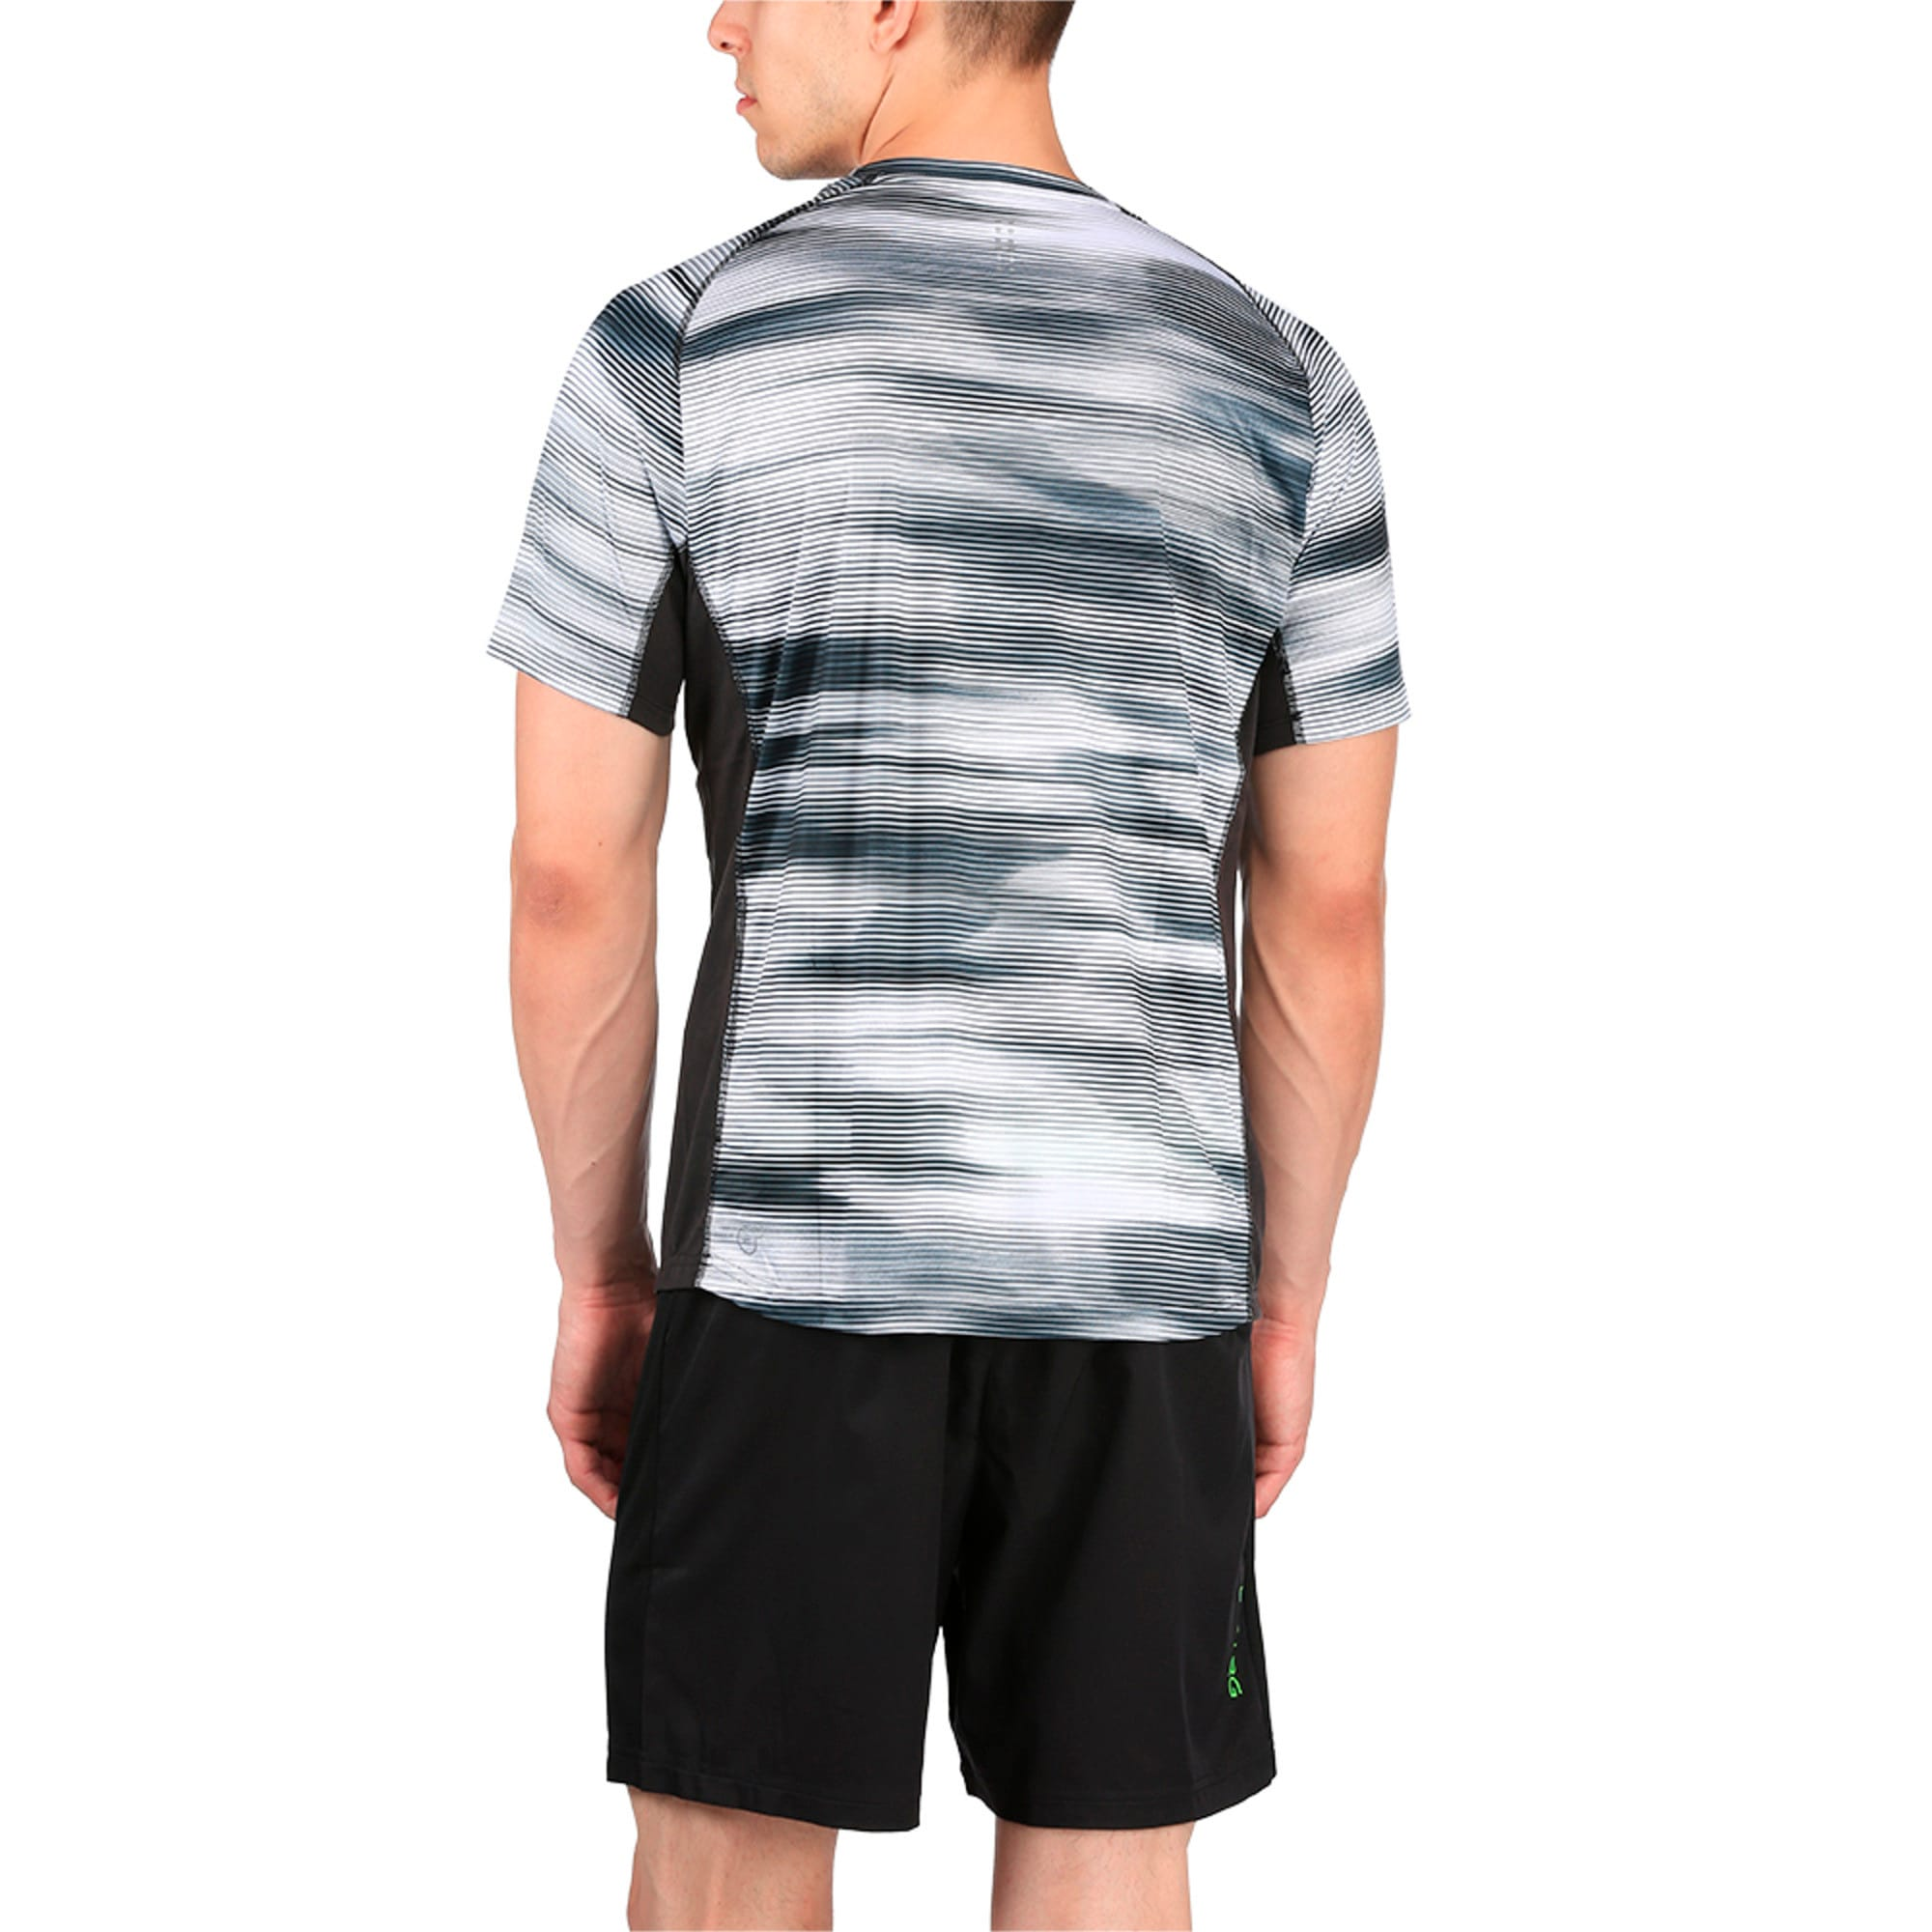 Thumbnail 3 of Running Men's Graphic T-Shirt, Puma Black Heather, medium-IND